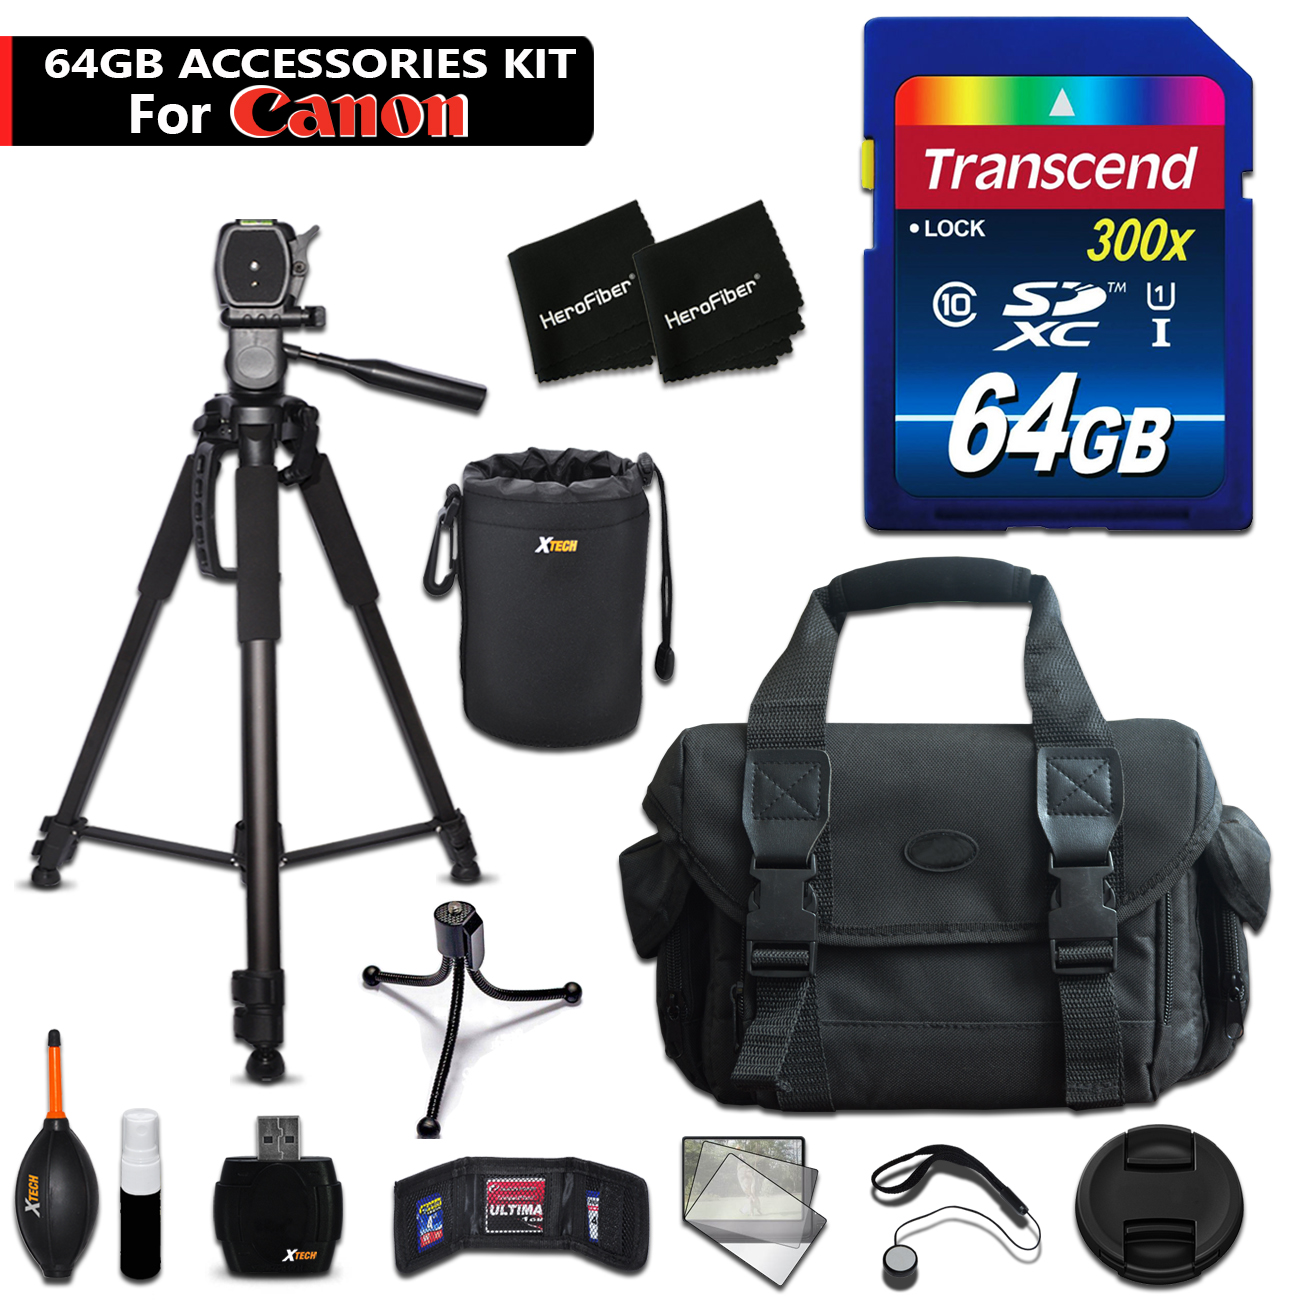 64GB Accessory Kit for Canon EOS 80D, 70D, EOS Rebel T6i,...